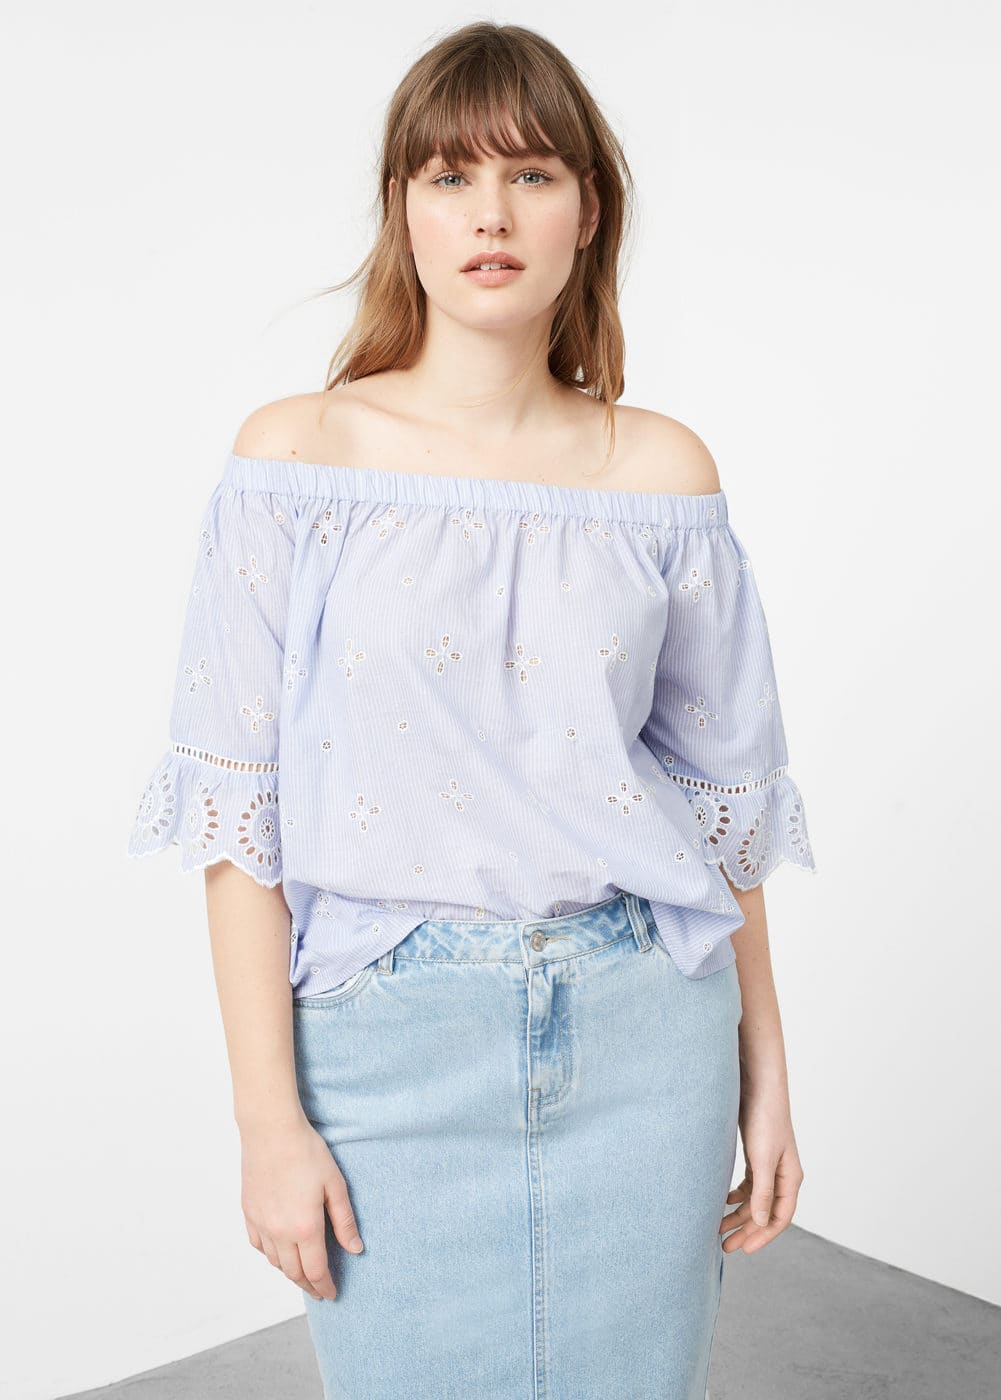 Falda denim claro | VIOLETA BY MANGO